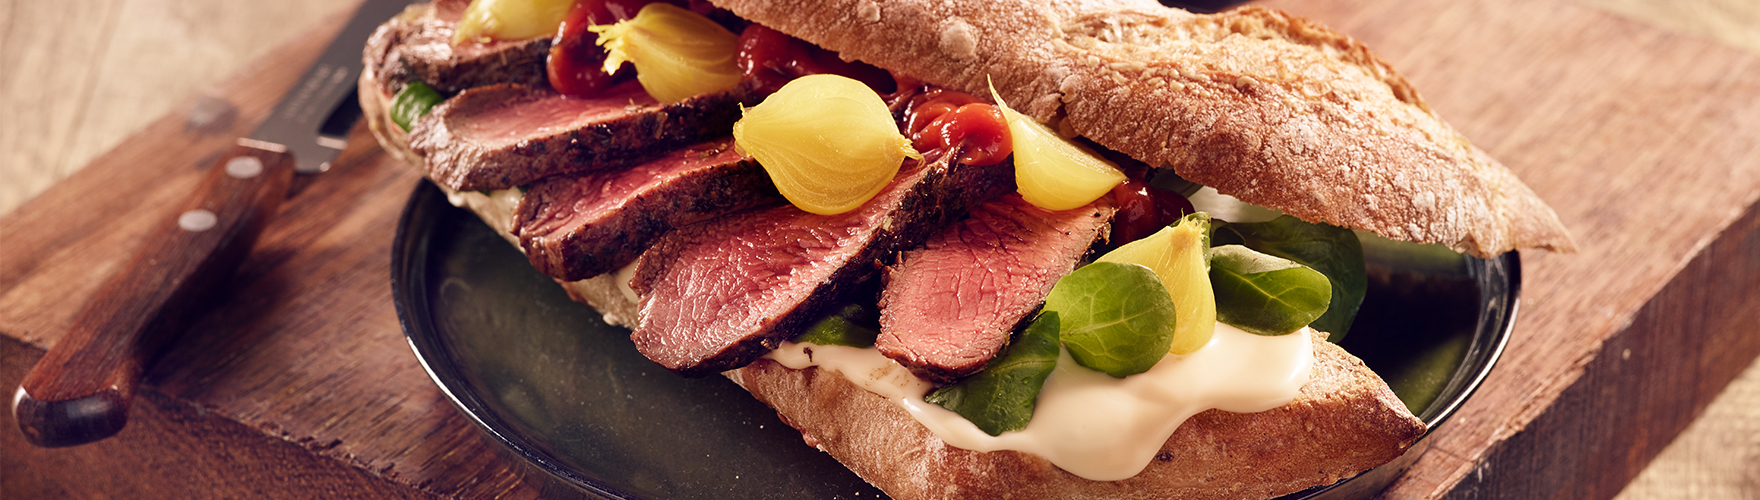 ERU Spreadable Gouda Extra Aged Steak Sandwich